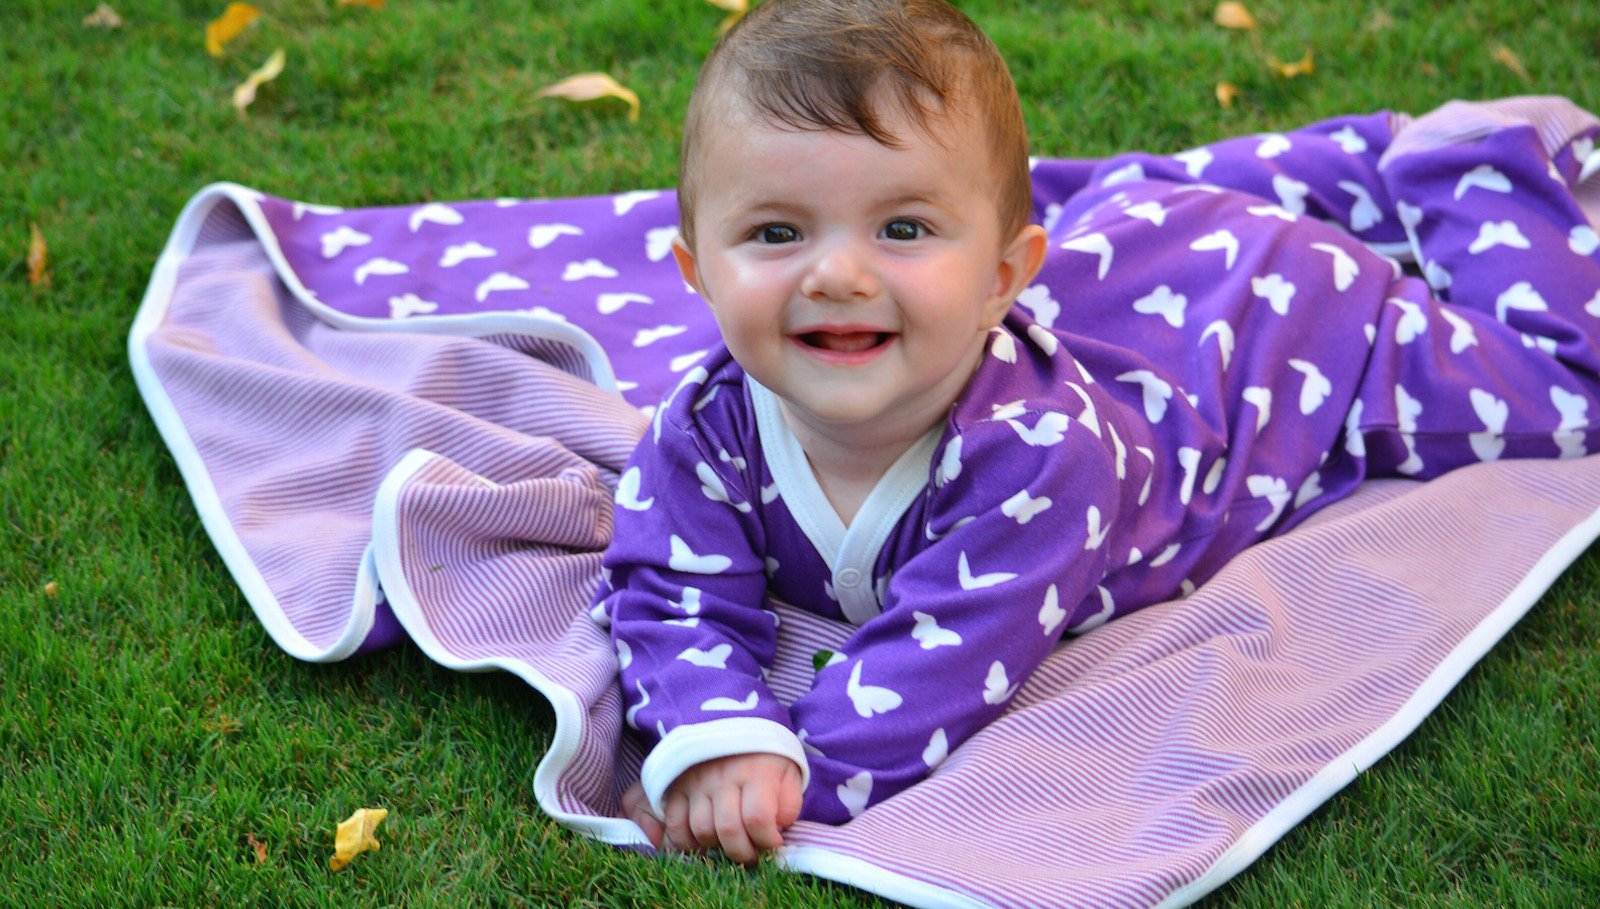 ADORABLE ORGANIC ROMPERS, FOOTIES, BIBS AND MORE